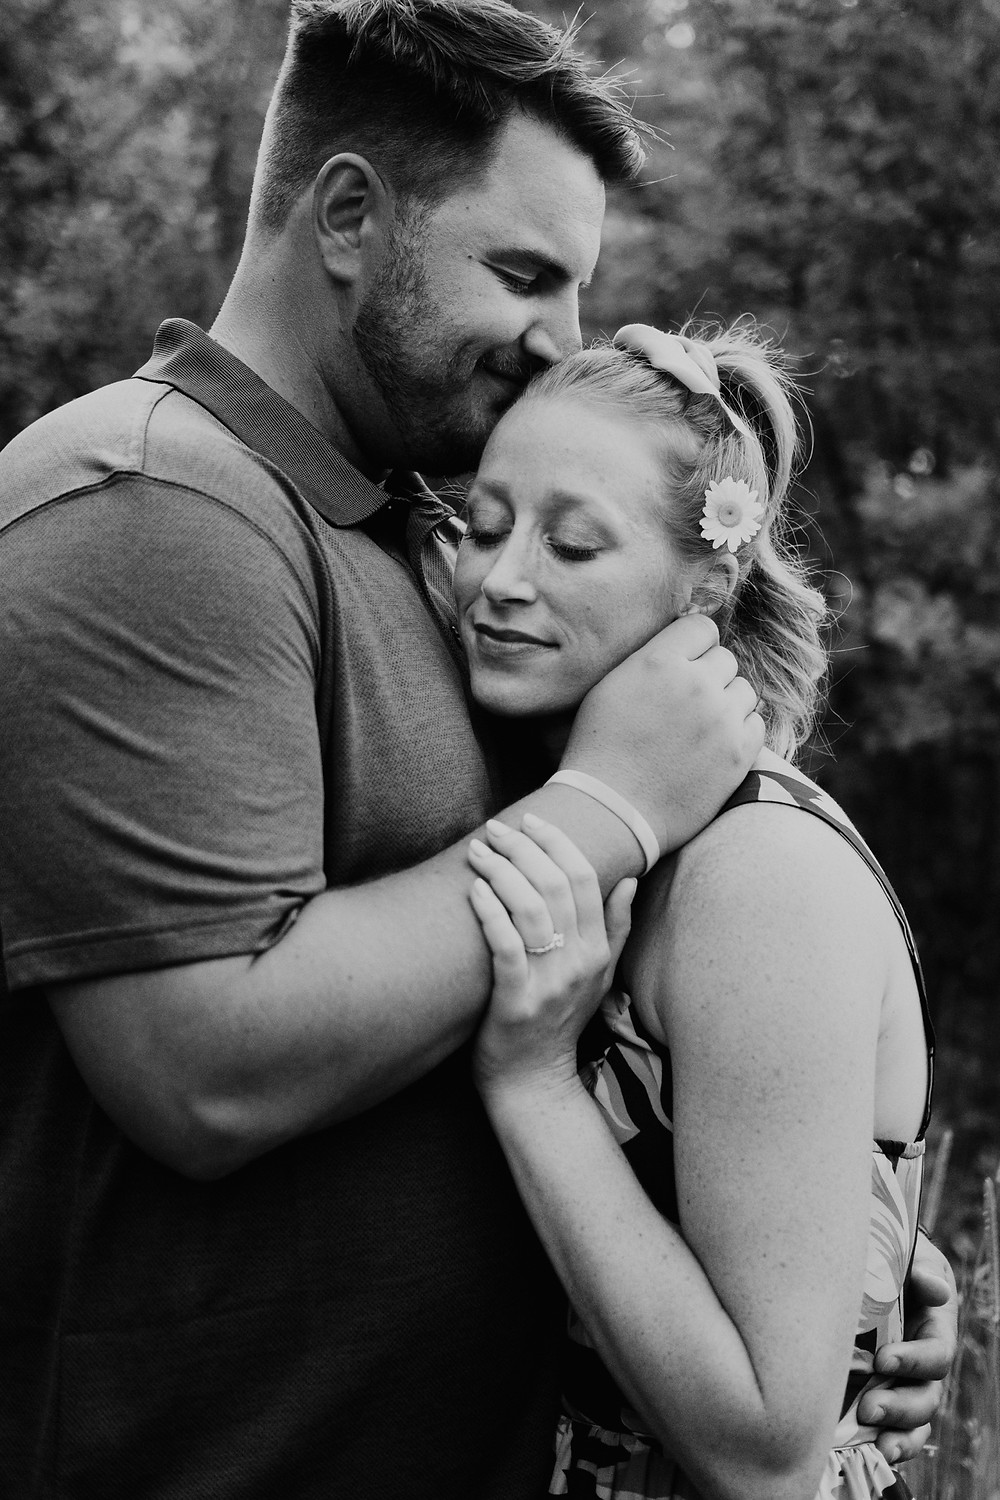 Couple embraces during engagement photos at park in Michigan. Photographed by Nicole Leanne Photography